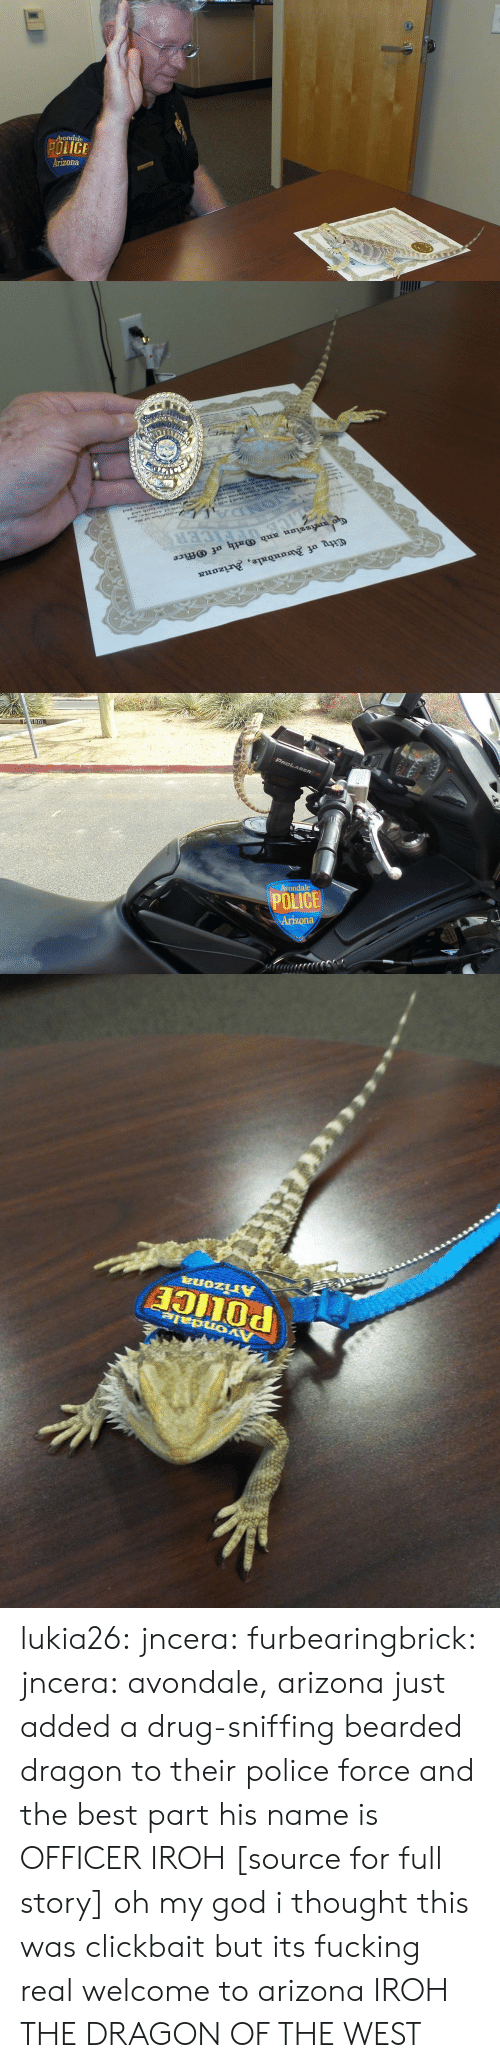 Bearded Dragon: Avondale  POLICE  Arizona   ty of anbale, Arizana  ssion xnb (rth of ffice  CER   PROLASER  Avondale  POLICE   PULICE  Arizona lukia26:  jncera:  furbearingbrick:  jncera:  avondale, arizona just added a drug-sniffing bearded dragon to their police force and the best part his name is OFFICER IROH [source for full story]  oh my god i thought this was clickbait but its fucking real  welcome to arizona  IROH THE DRAGON OF THE WEST